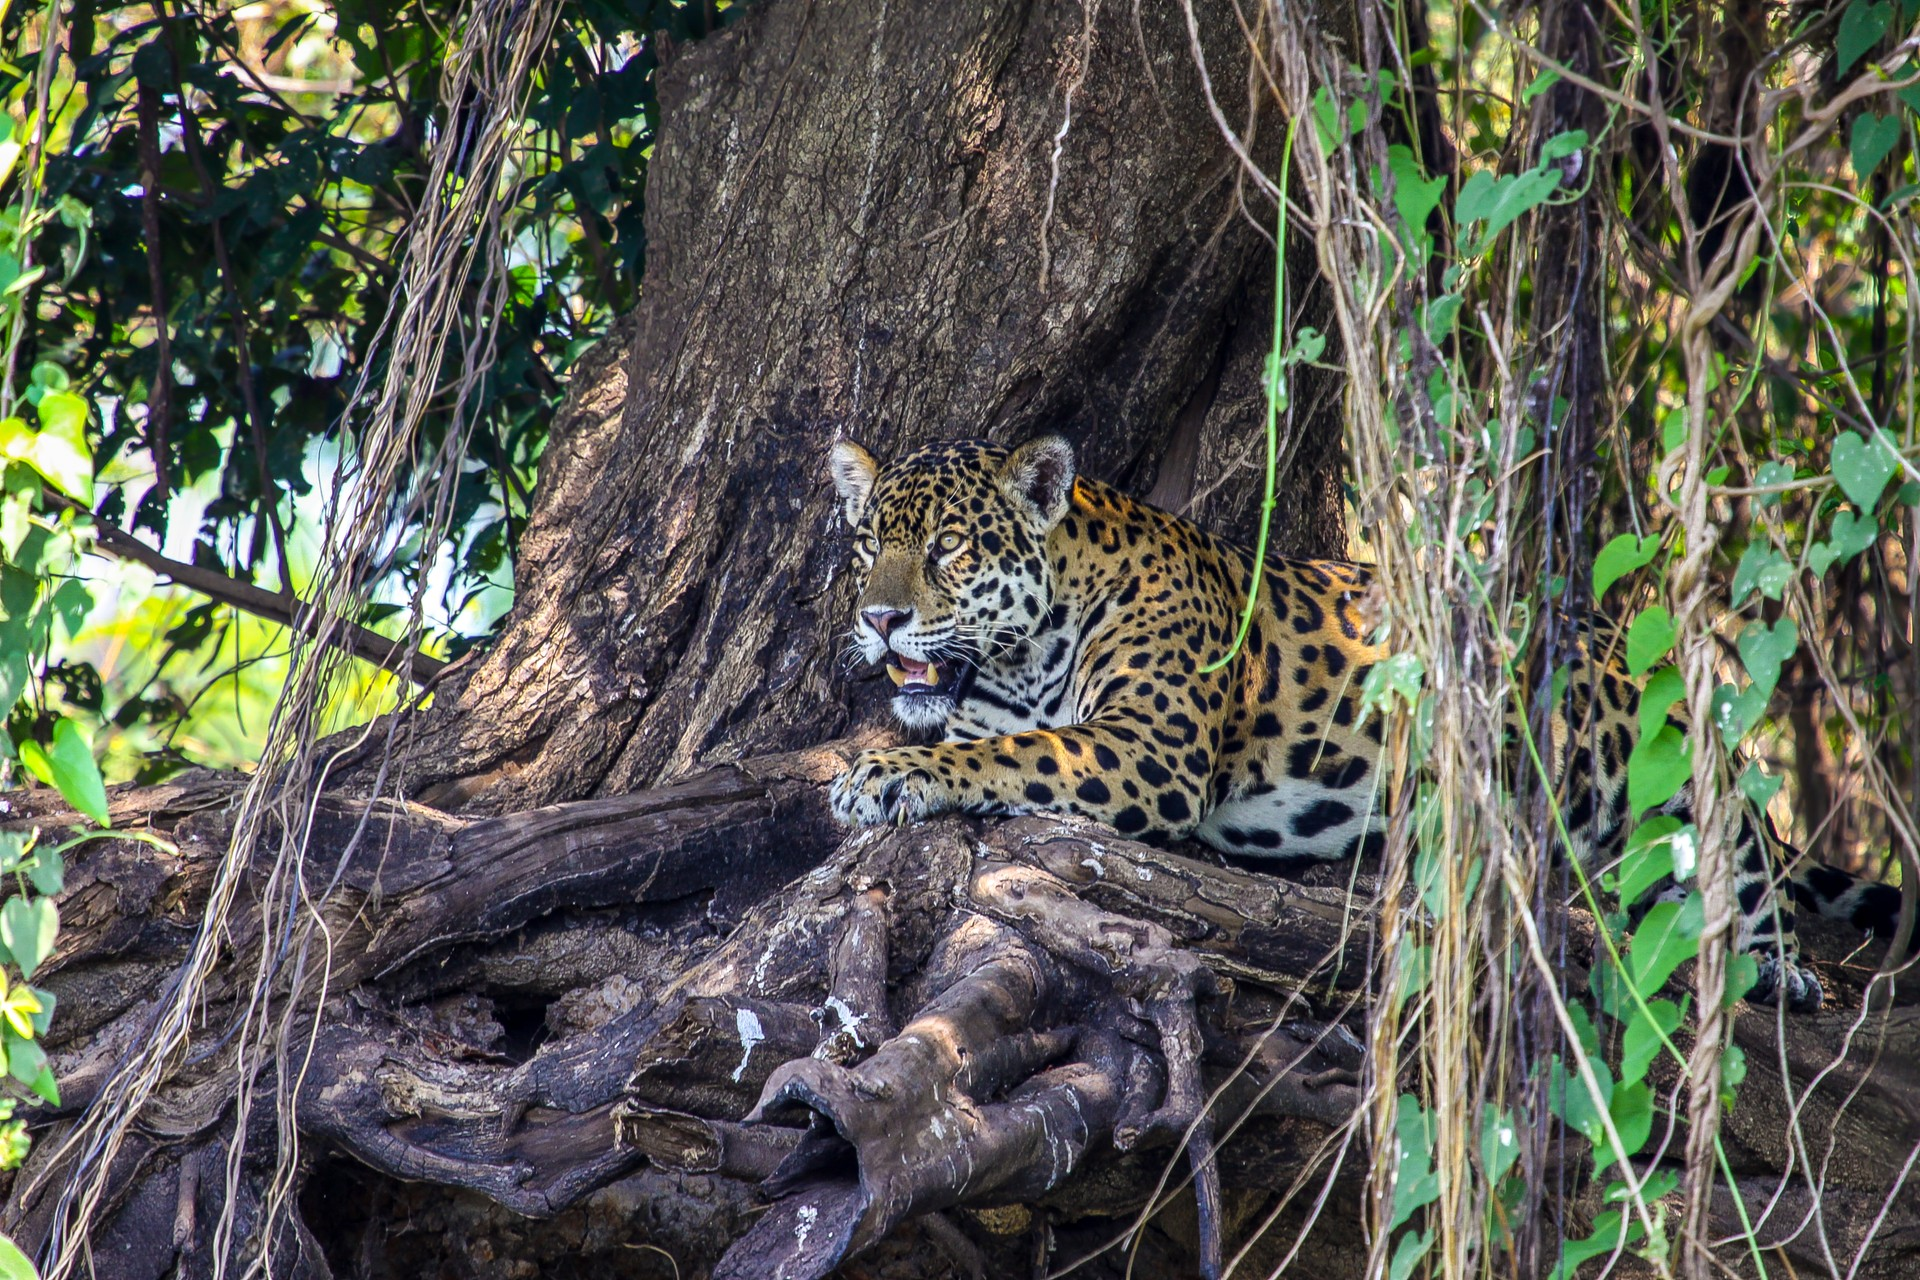 Jaguar in Pantanal jungle